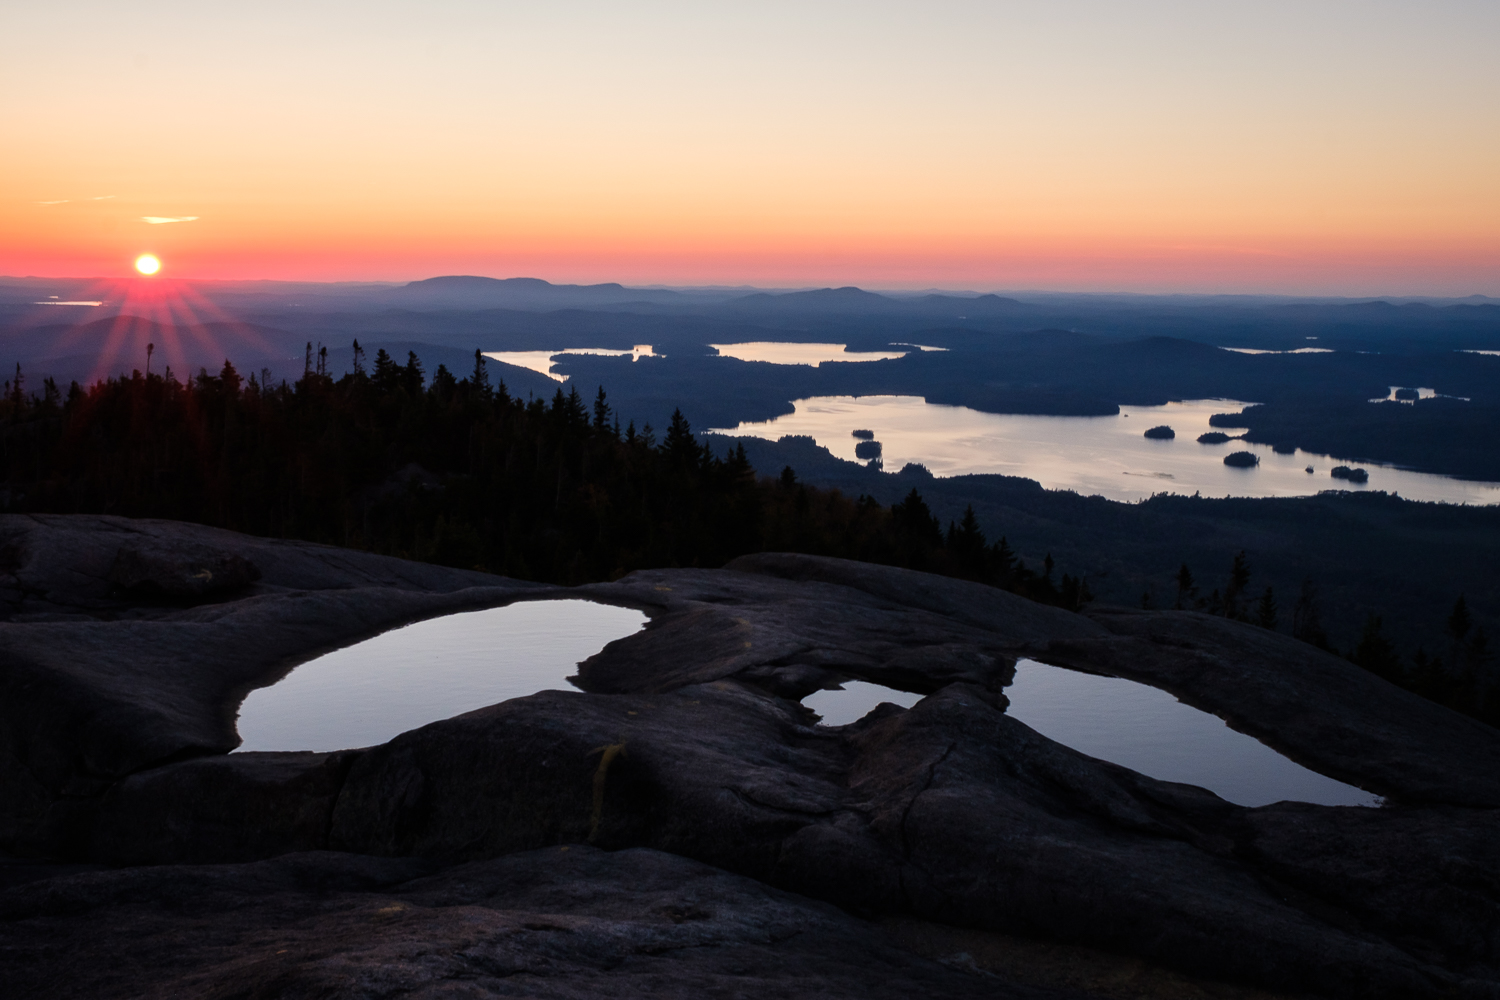 Sunset on Ampersand, looking out over Middle Saranac Lake, NY.